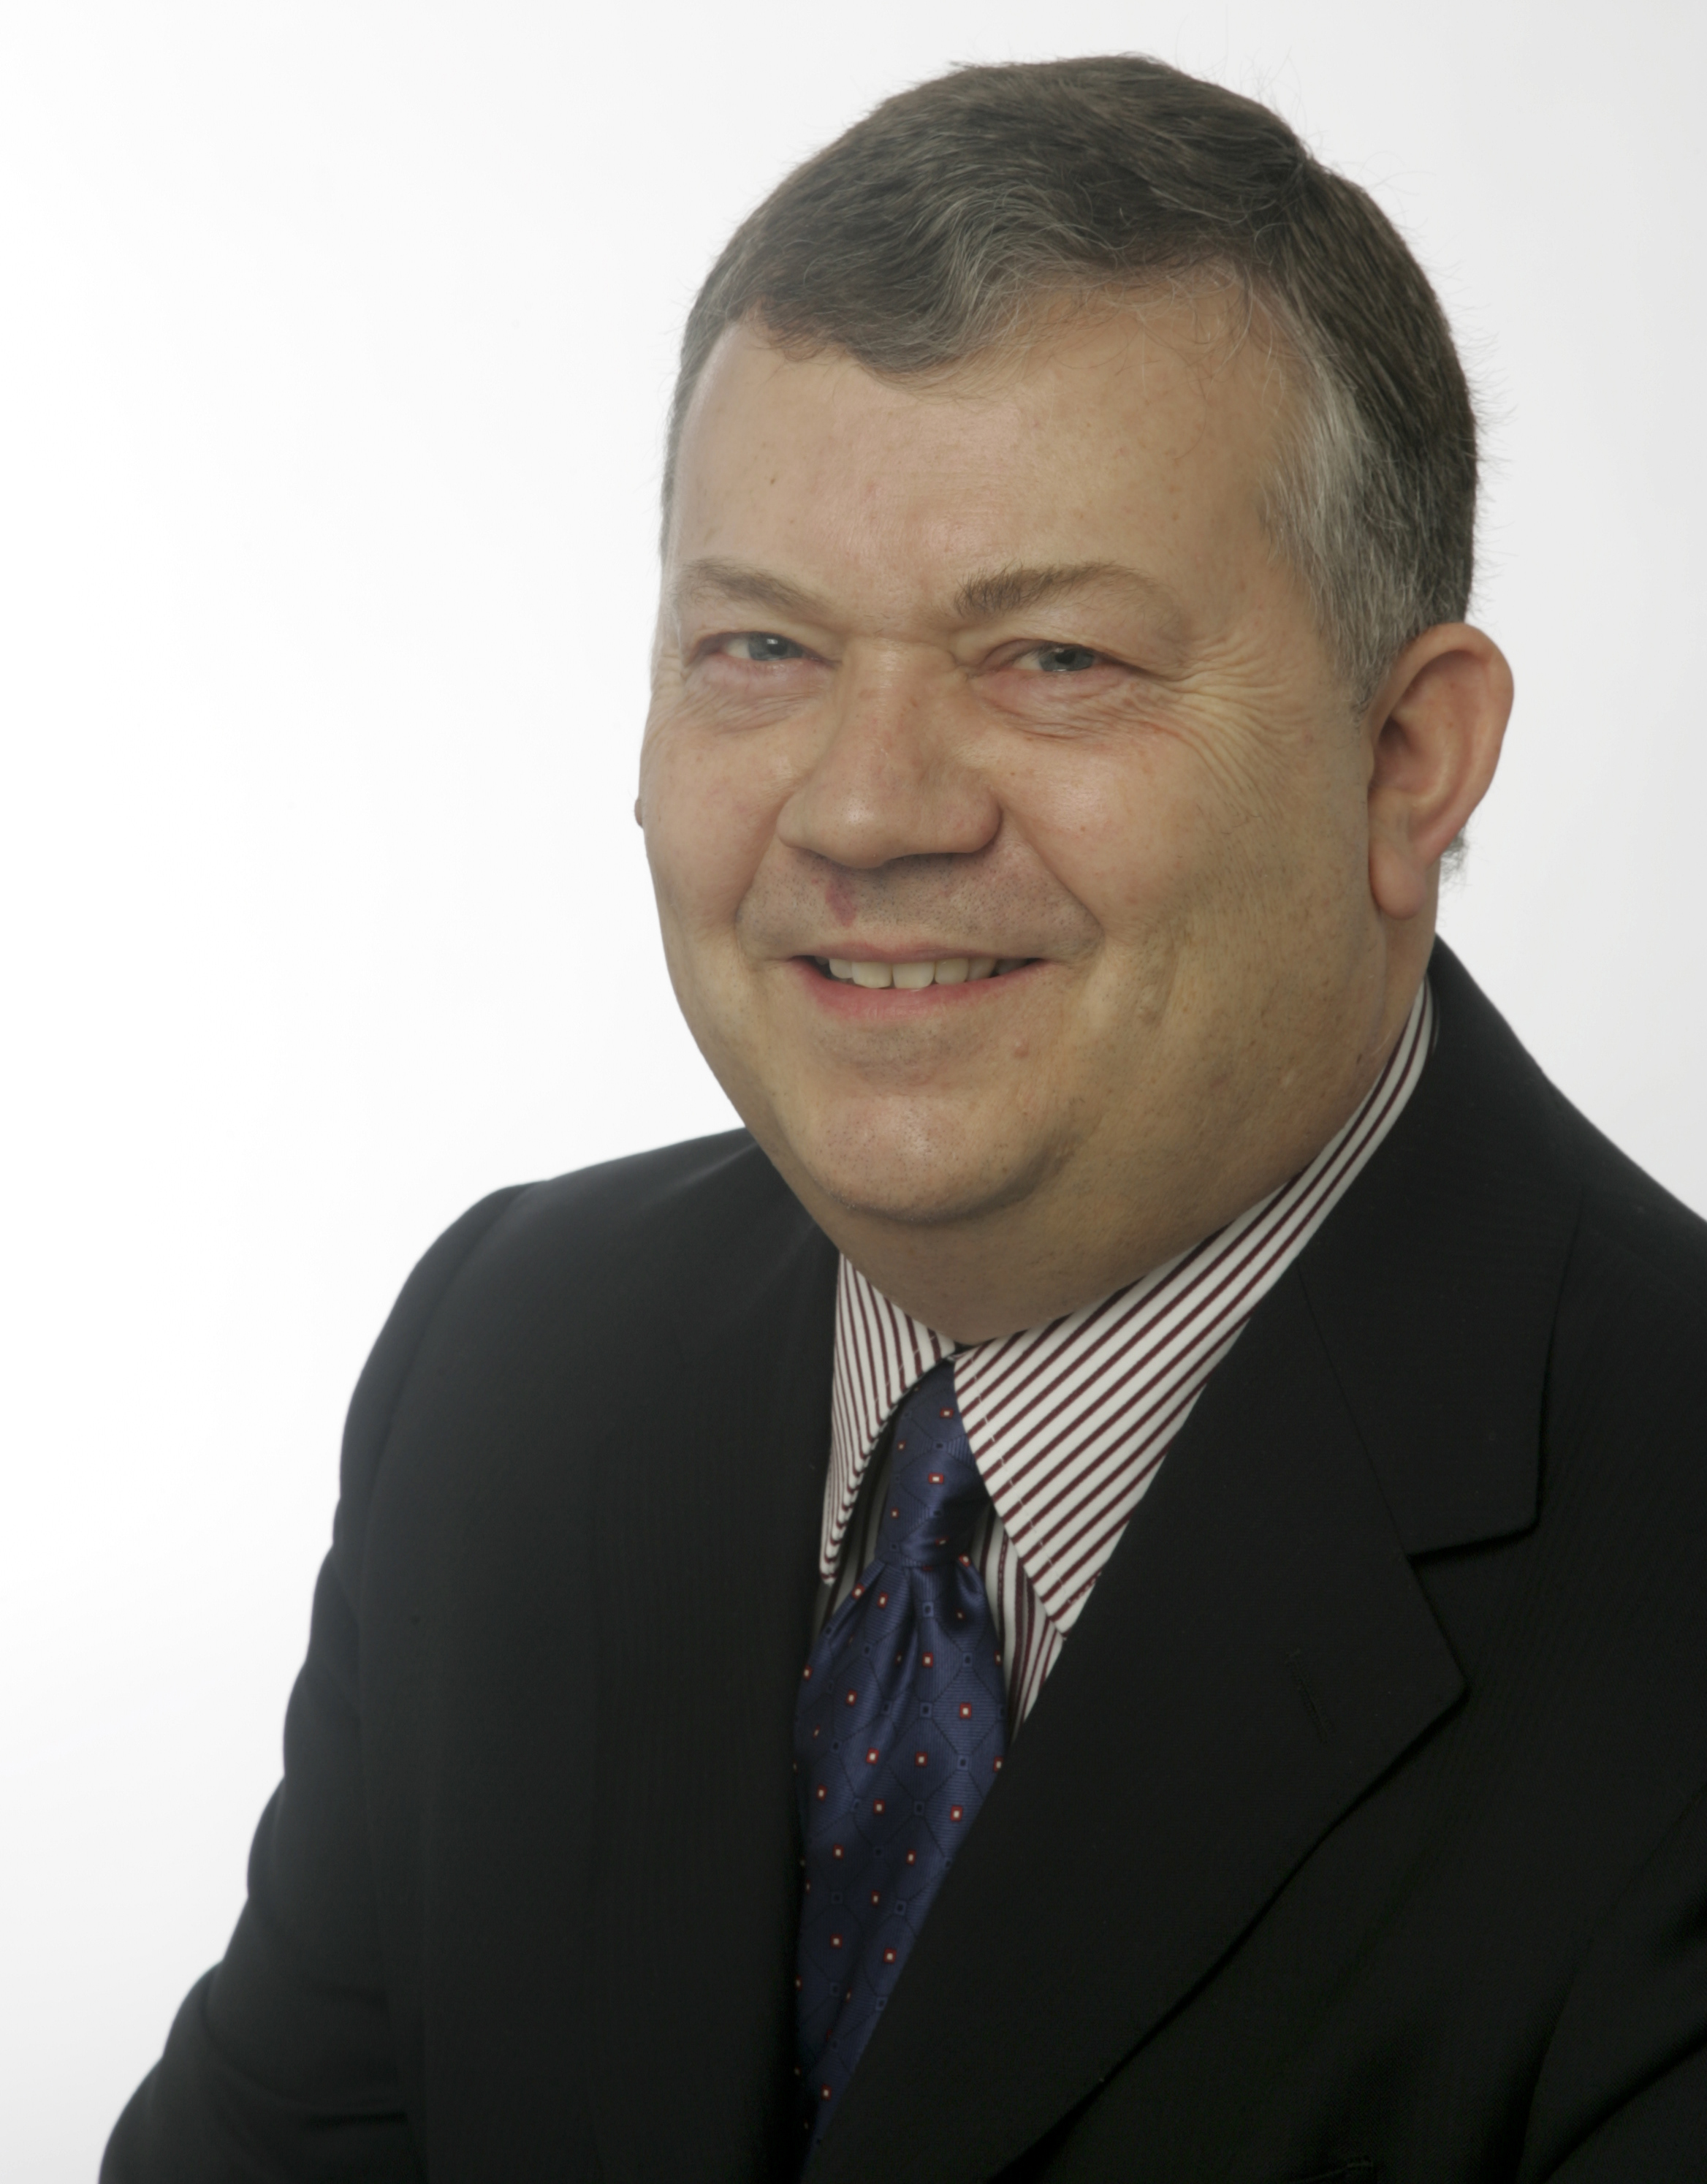 portrait image of chairman Keith Howells